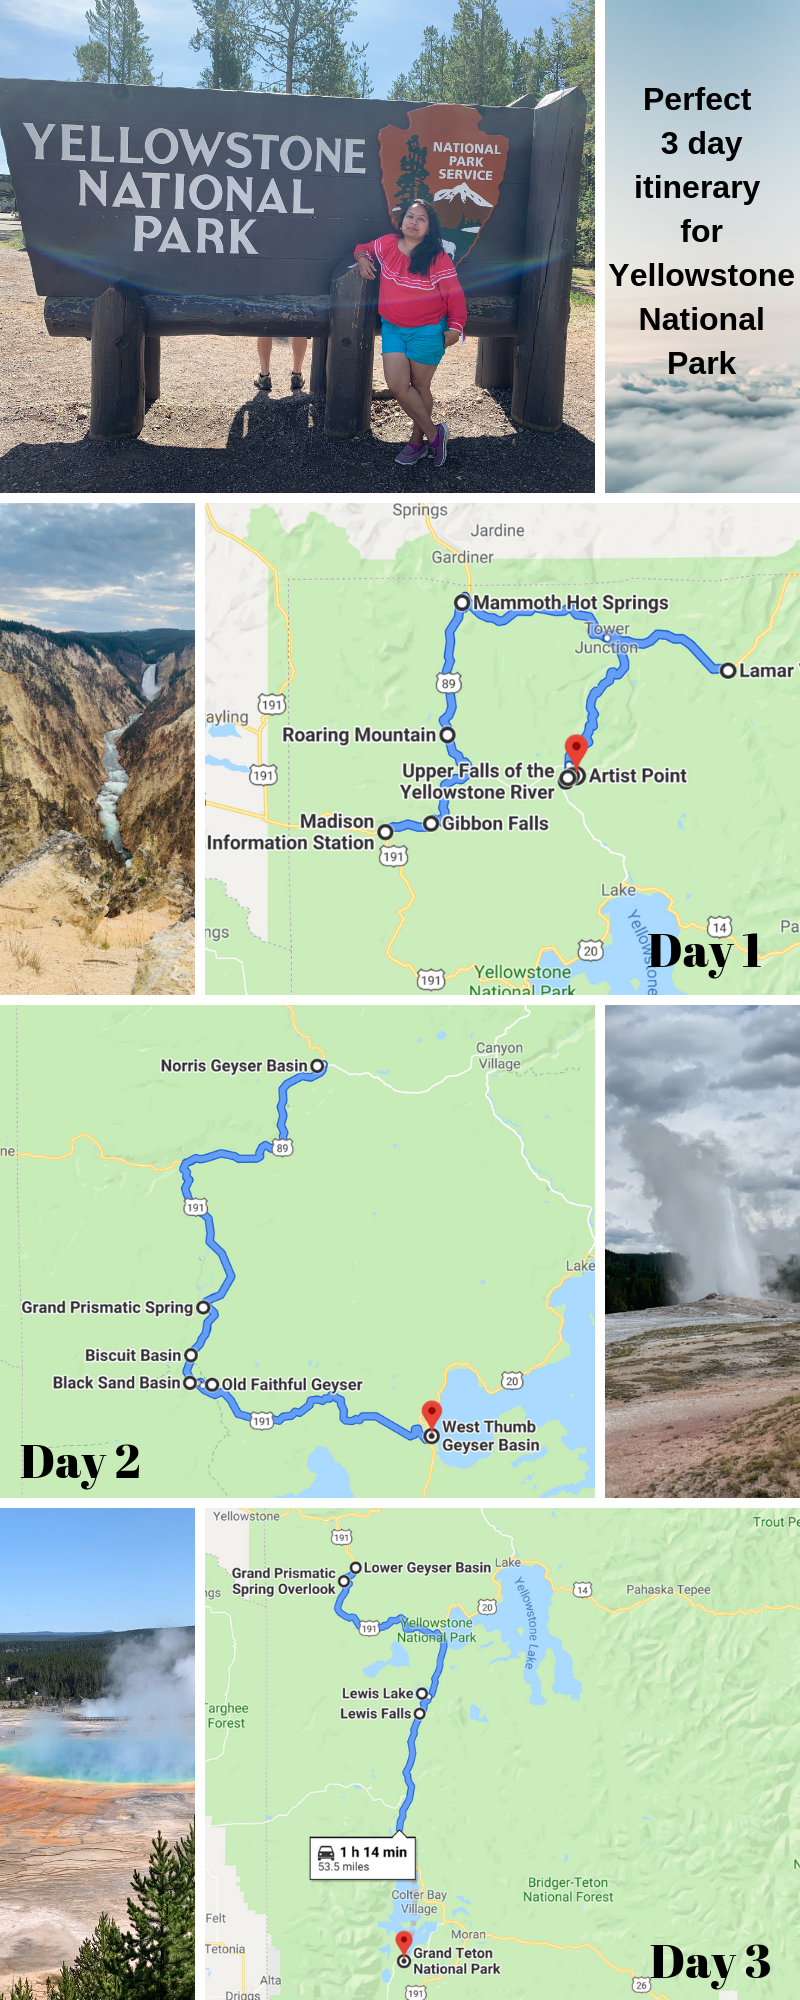 3 day itinerary for Yellowstone